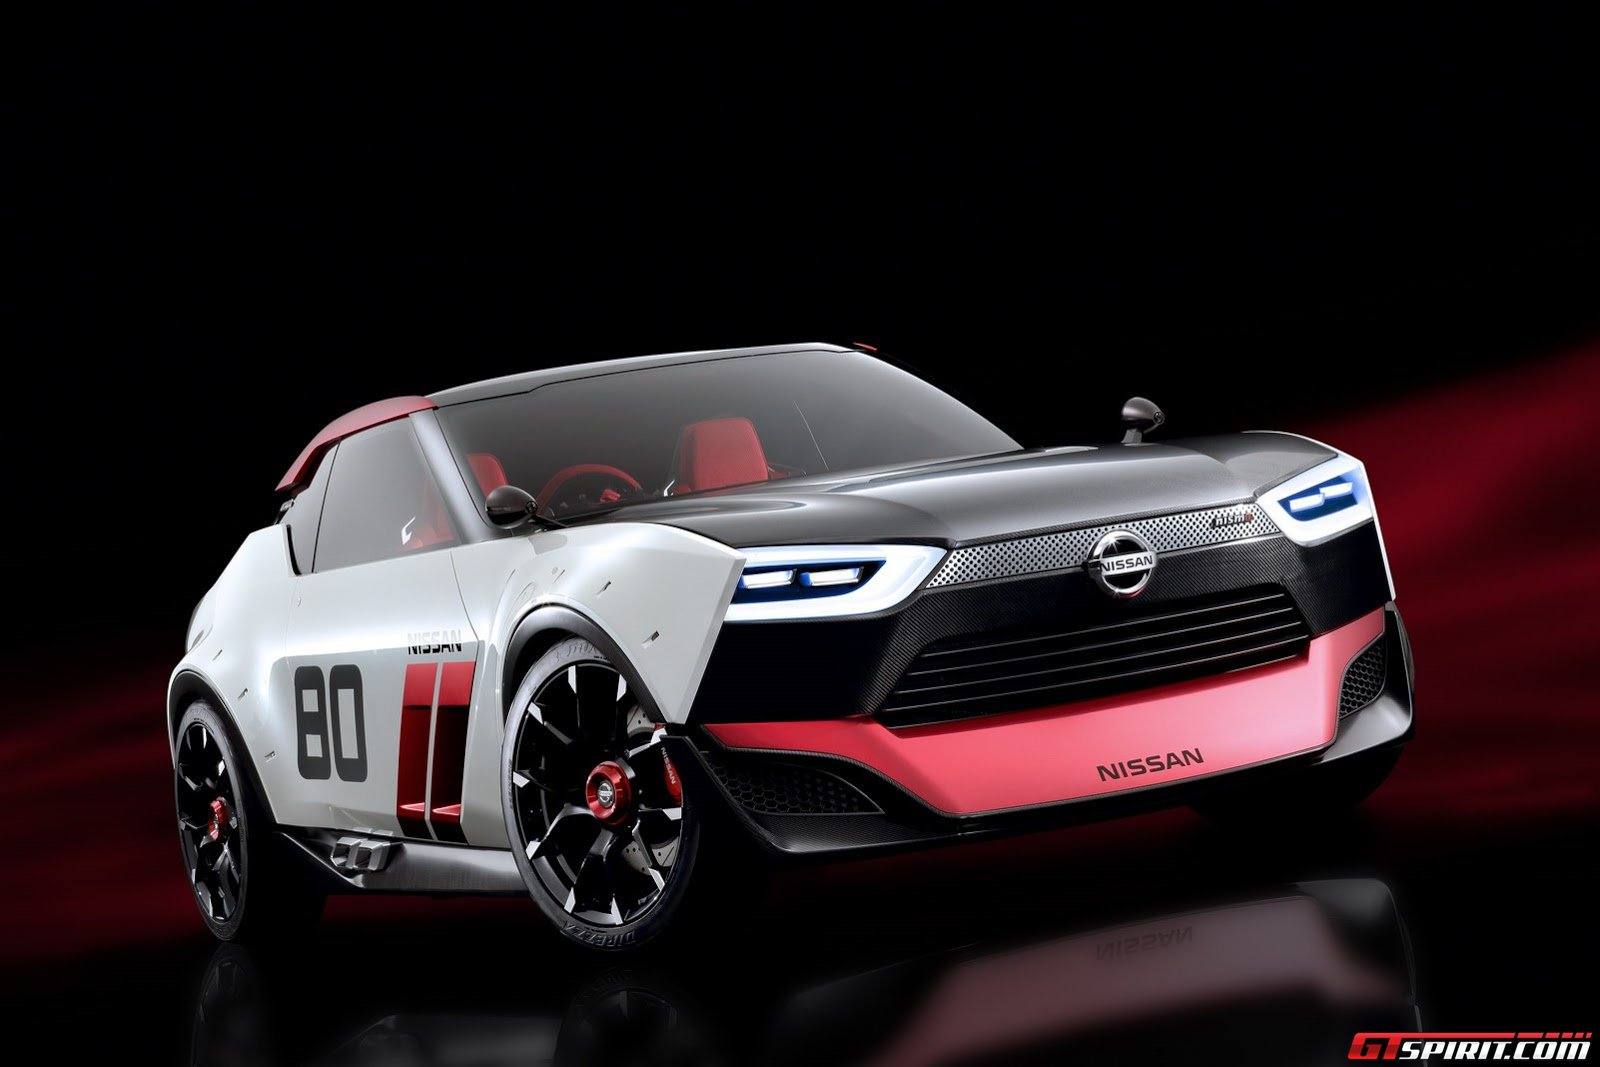 Next-Gen Nissan Z Sports Car And IDx Could Become One - GTspirit